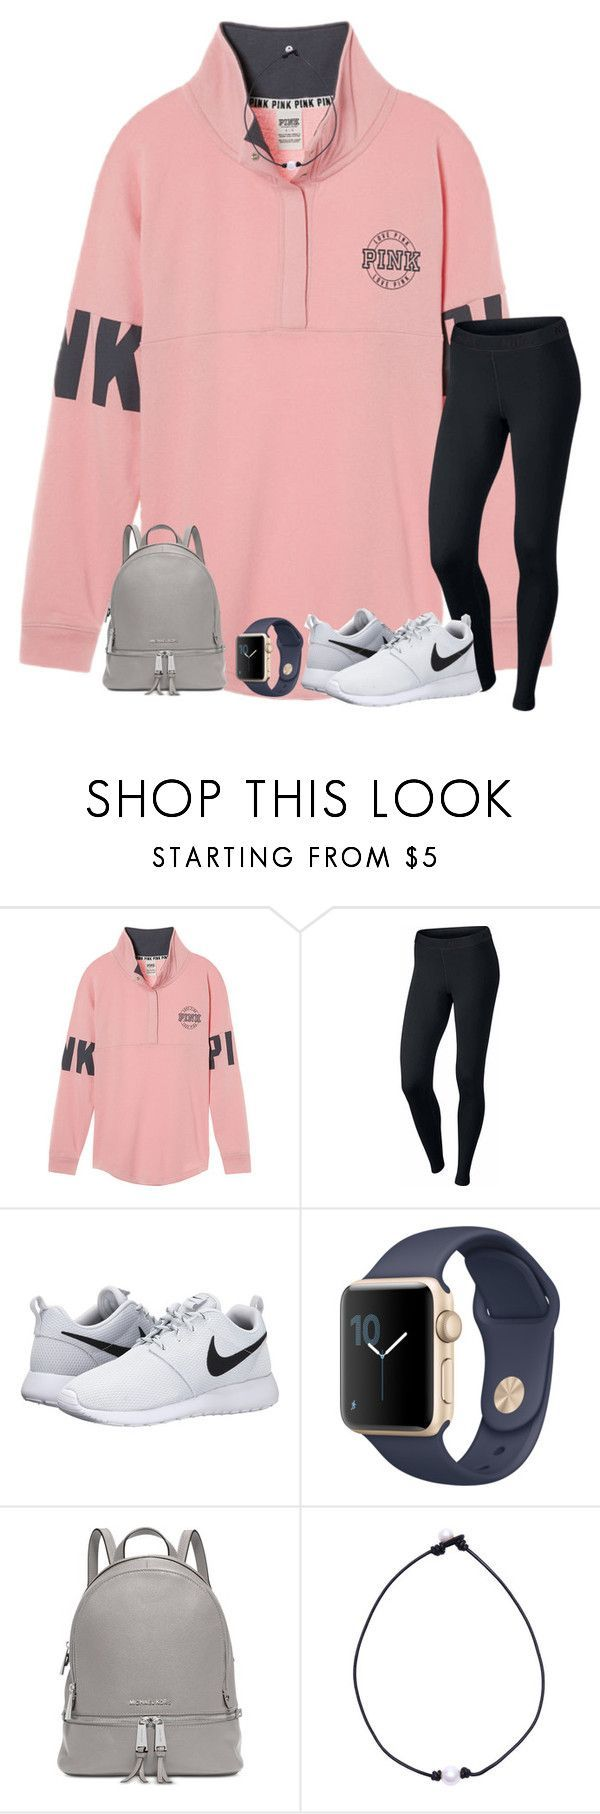 """""""rtd"""" by ctrygrl1999 ❤ liked on Polyvore featuring Victoria's Secret, NIKE and Michael Kors"""